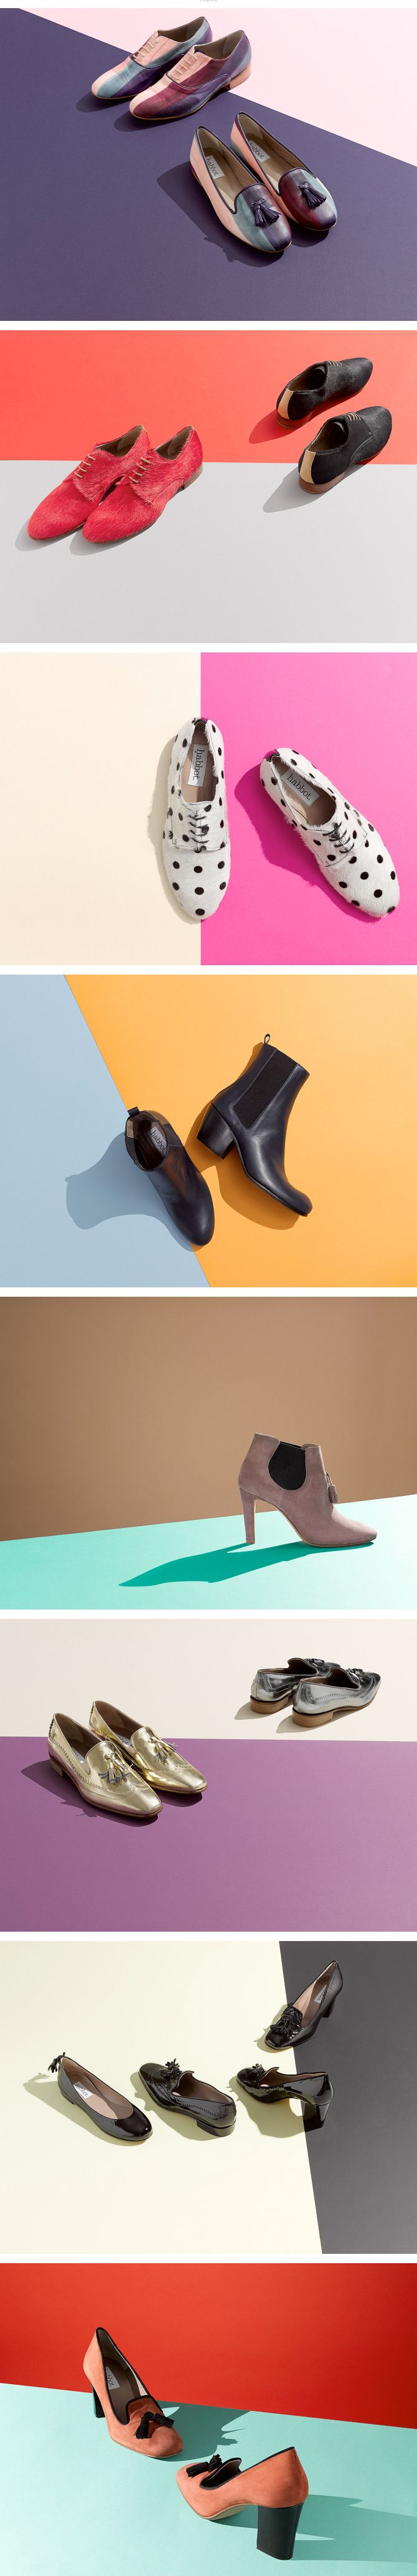 Cool graphic design idea..Shoes in pairs..Still Life photography...Habbot A/W 2013 | Sonia Rentsch